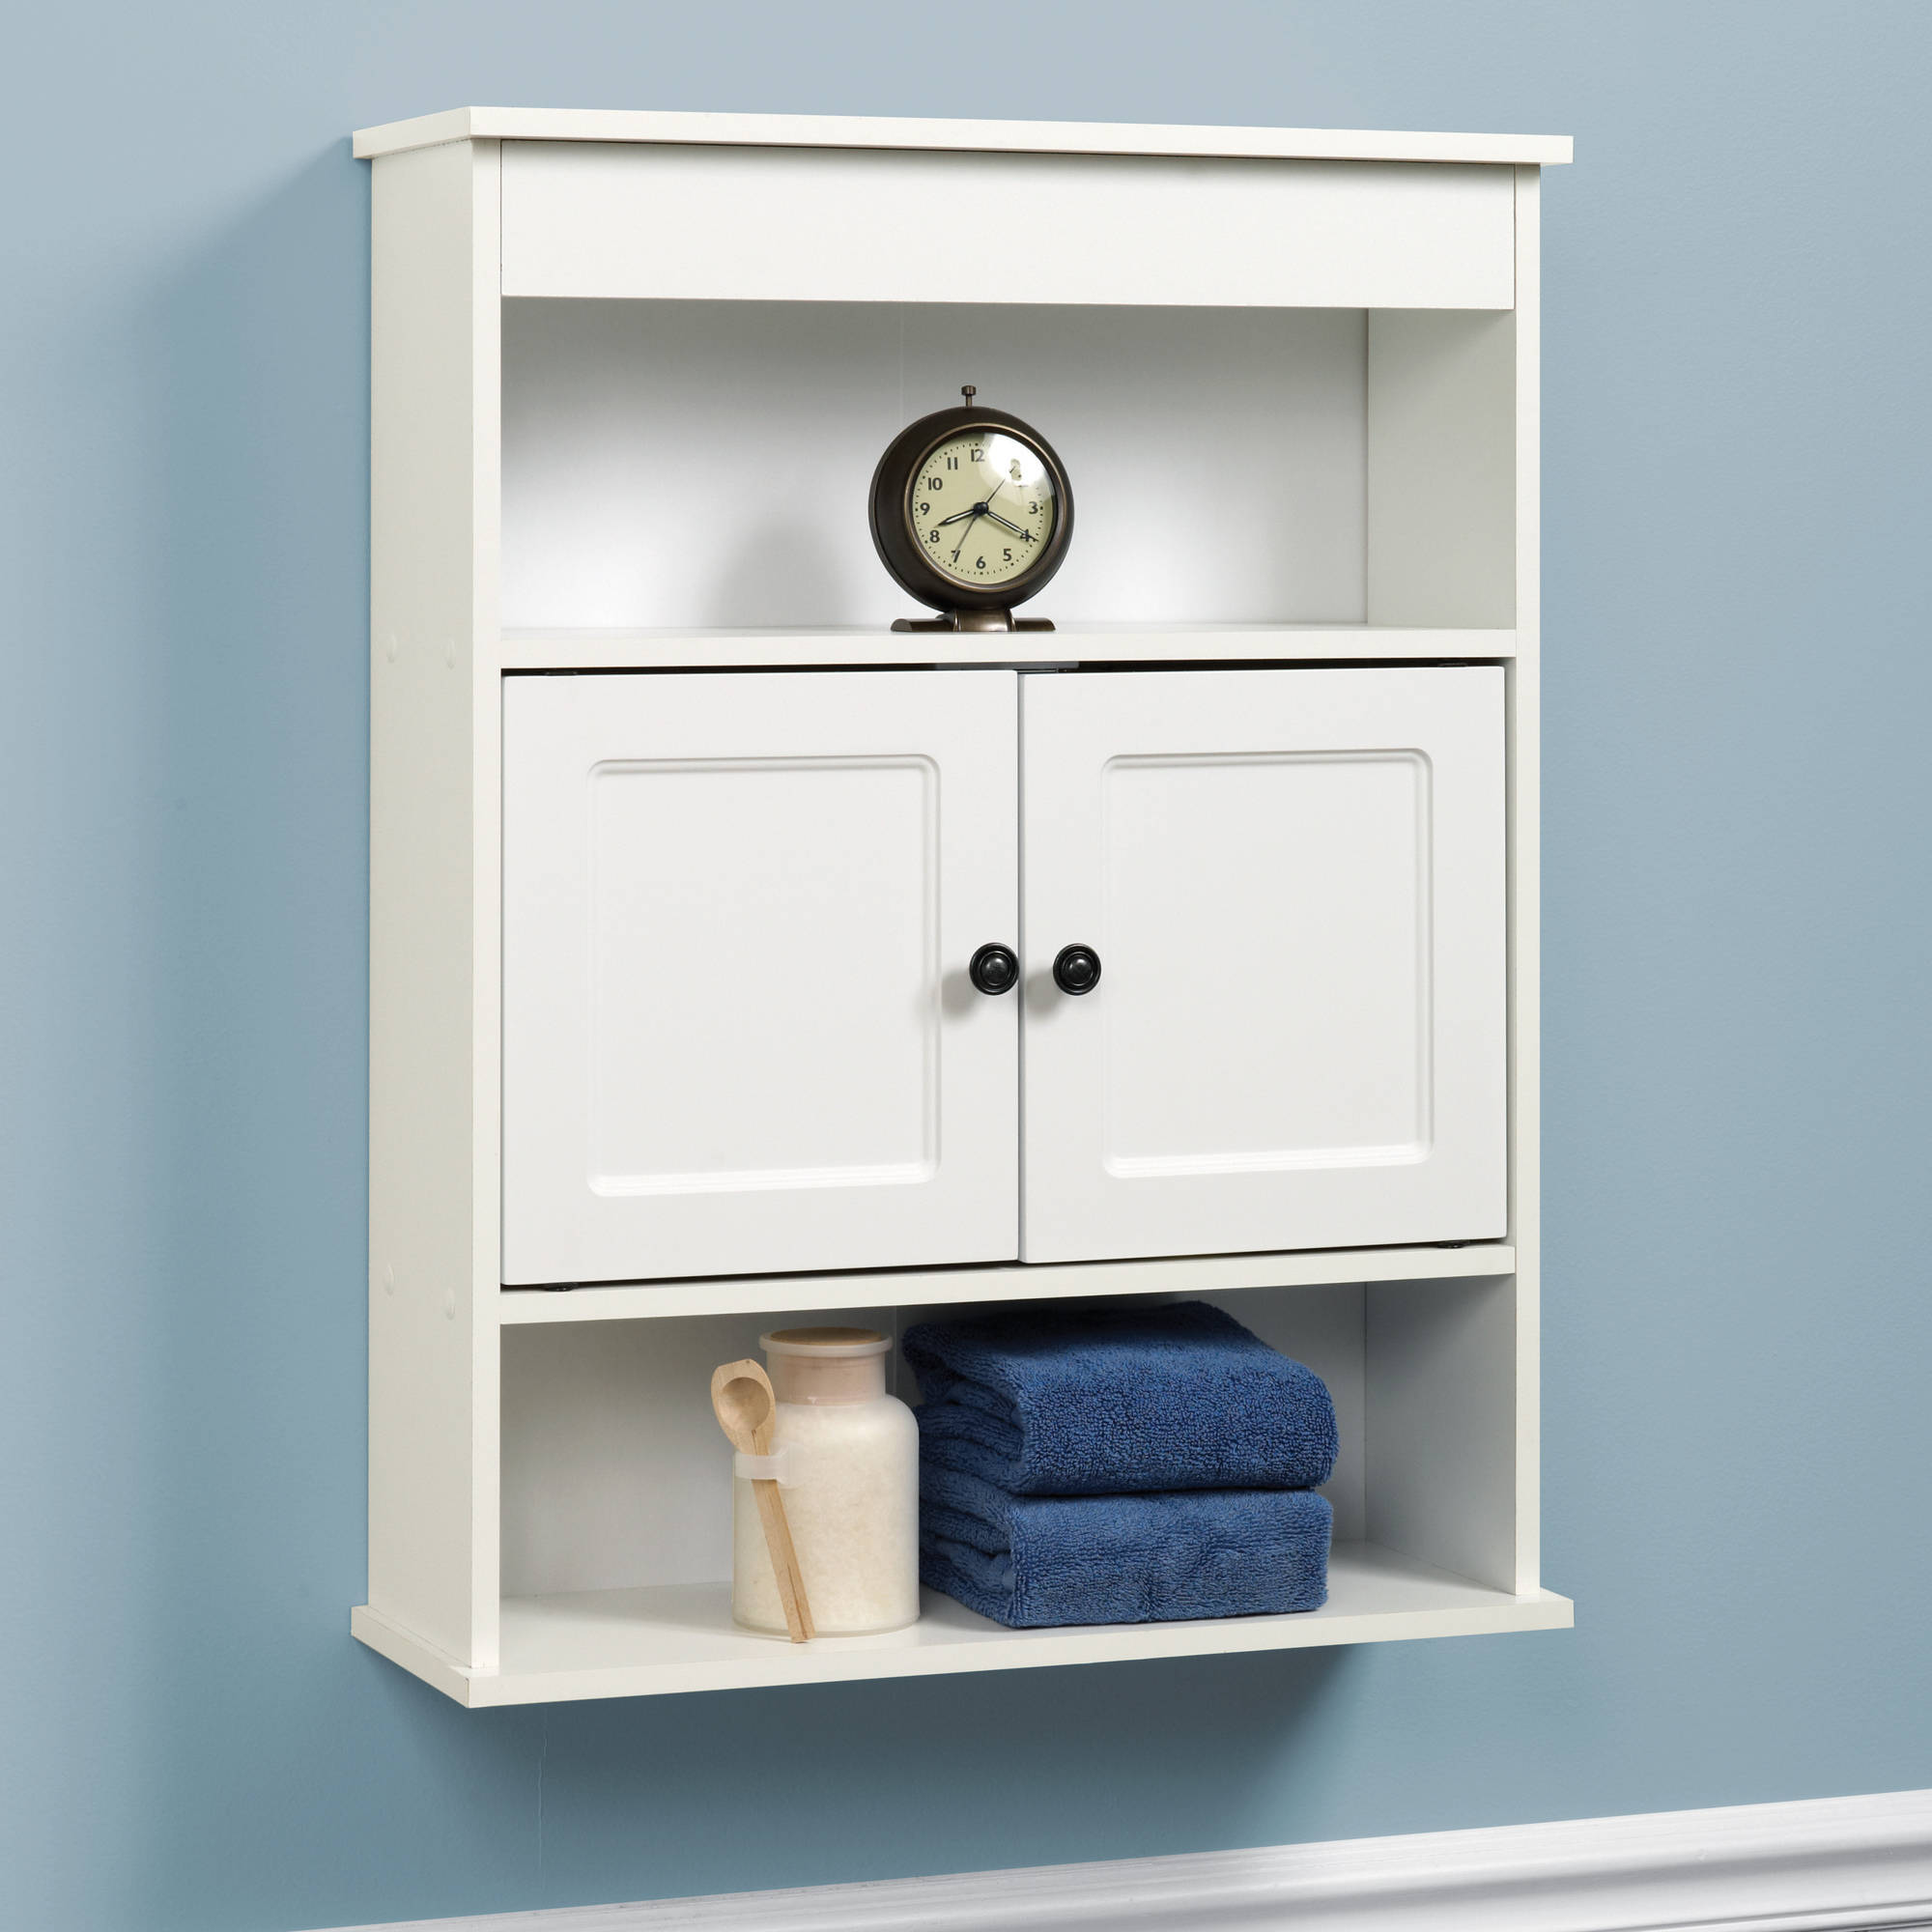 Superbe Chapter Bathroom Wall Cabinet, White